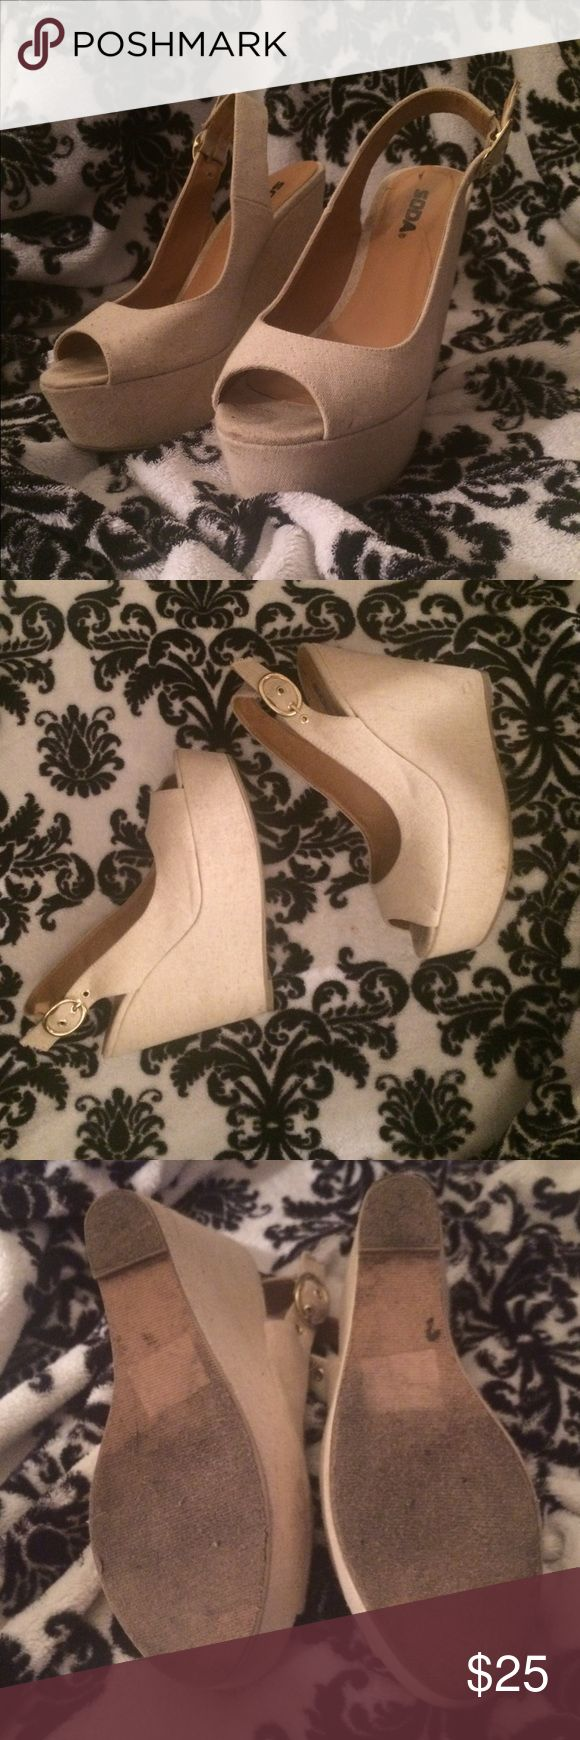 Wedge sandals Creme/tan wedged sandal with gold buckle on the heel strap Soda Shoes Sandals